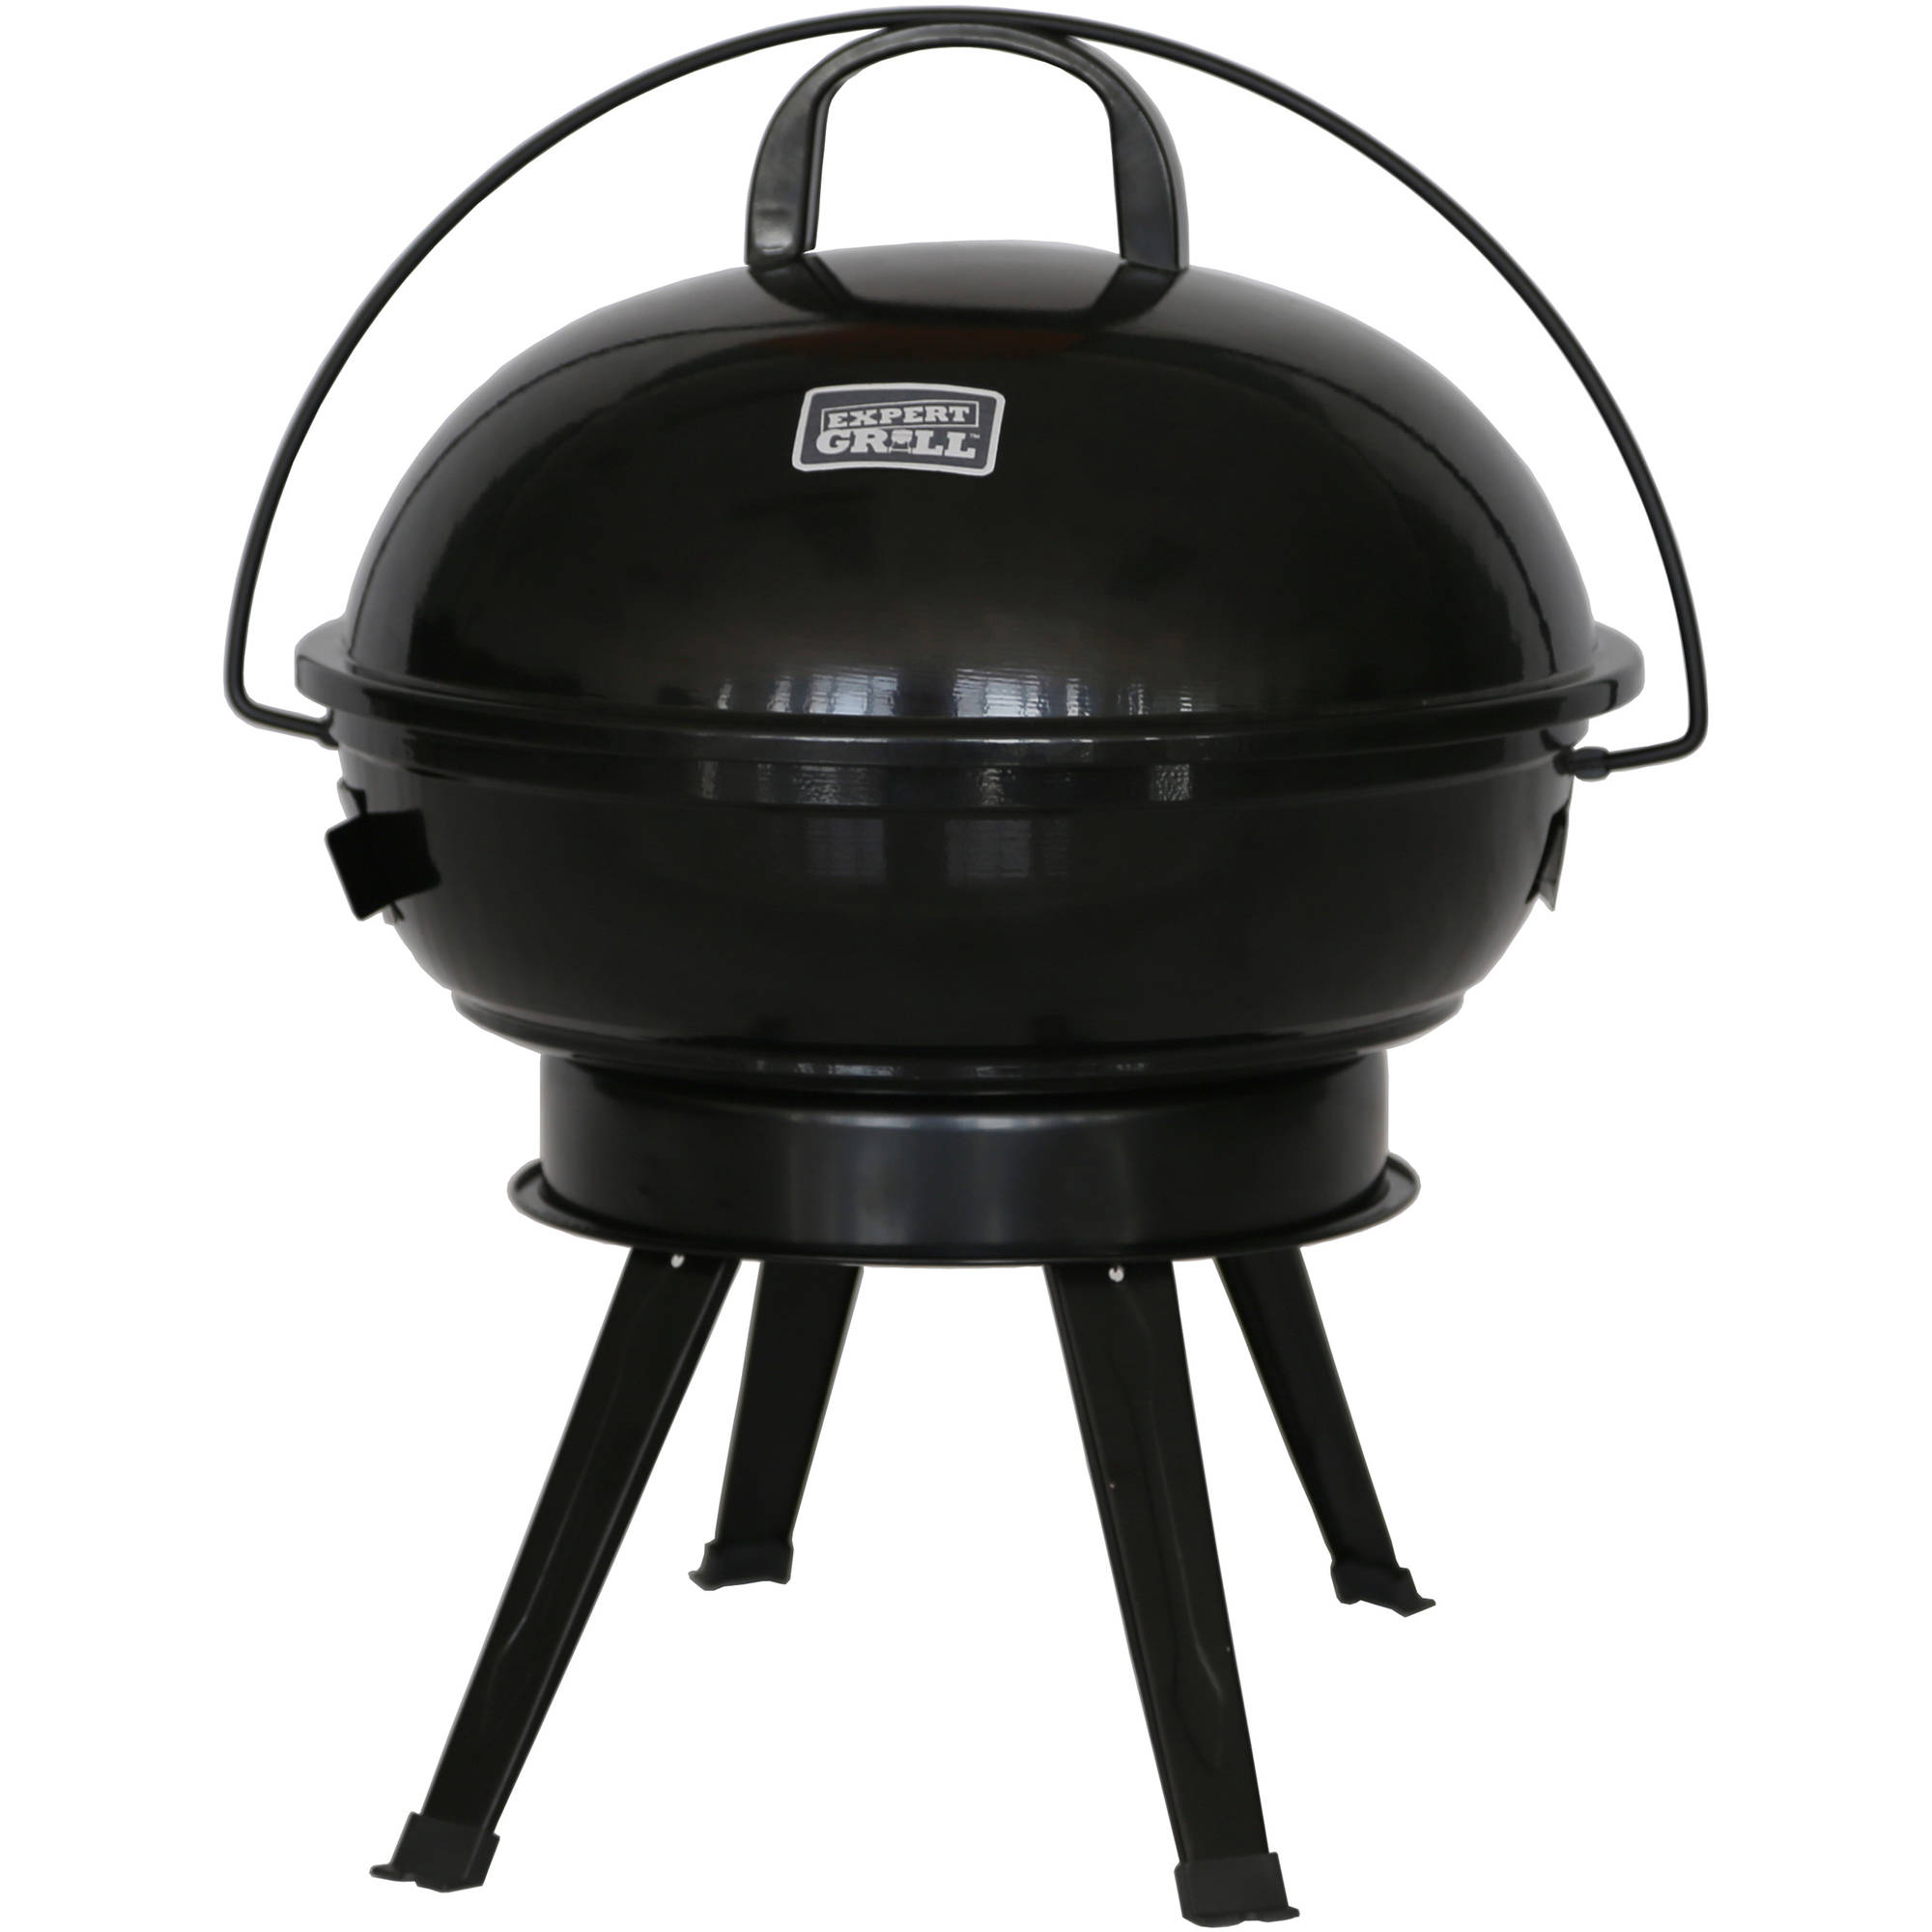 "Expert Grill 14.5"" Dome Charcoal Grill, Black"